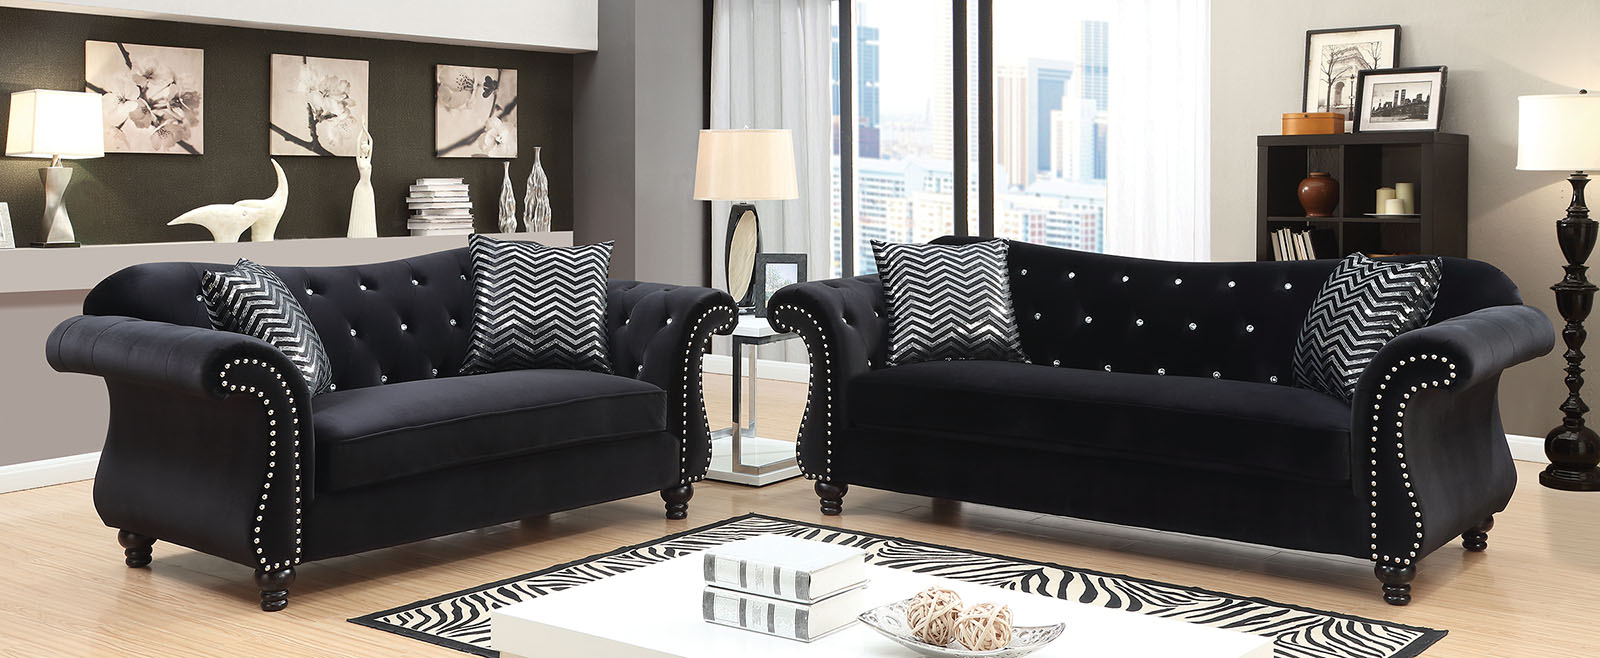 glam sofa set sectionals sofas big lots traditional formal living room black loveseat button tufted 2pc nailhead trim queen of castle relax walmart com